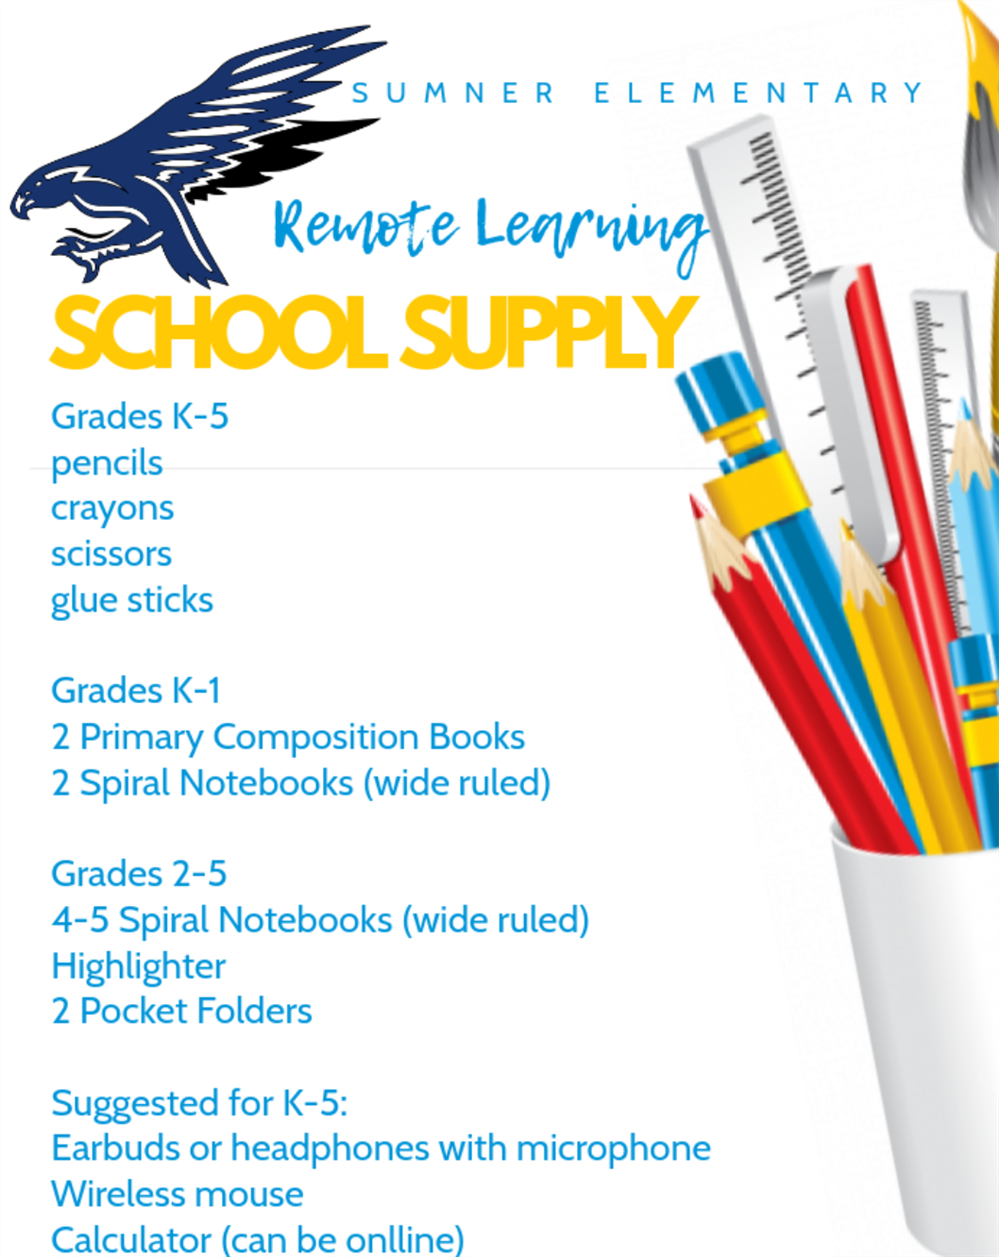 Remote Learning School Supply Grades K-5 pencils crayons scissors glue sticks